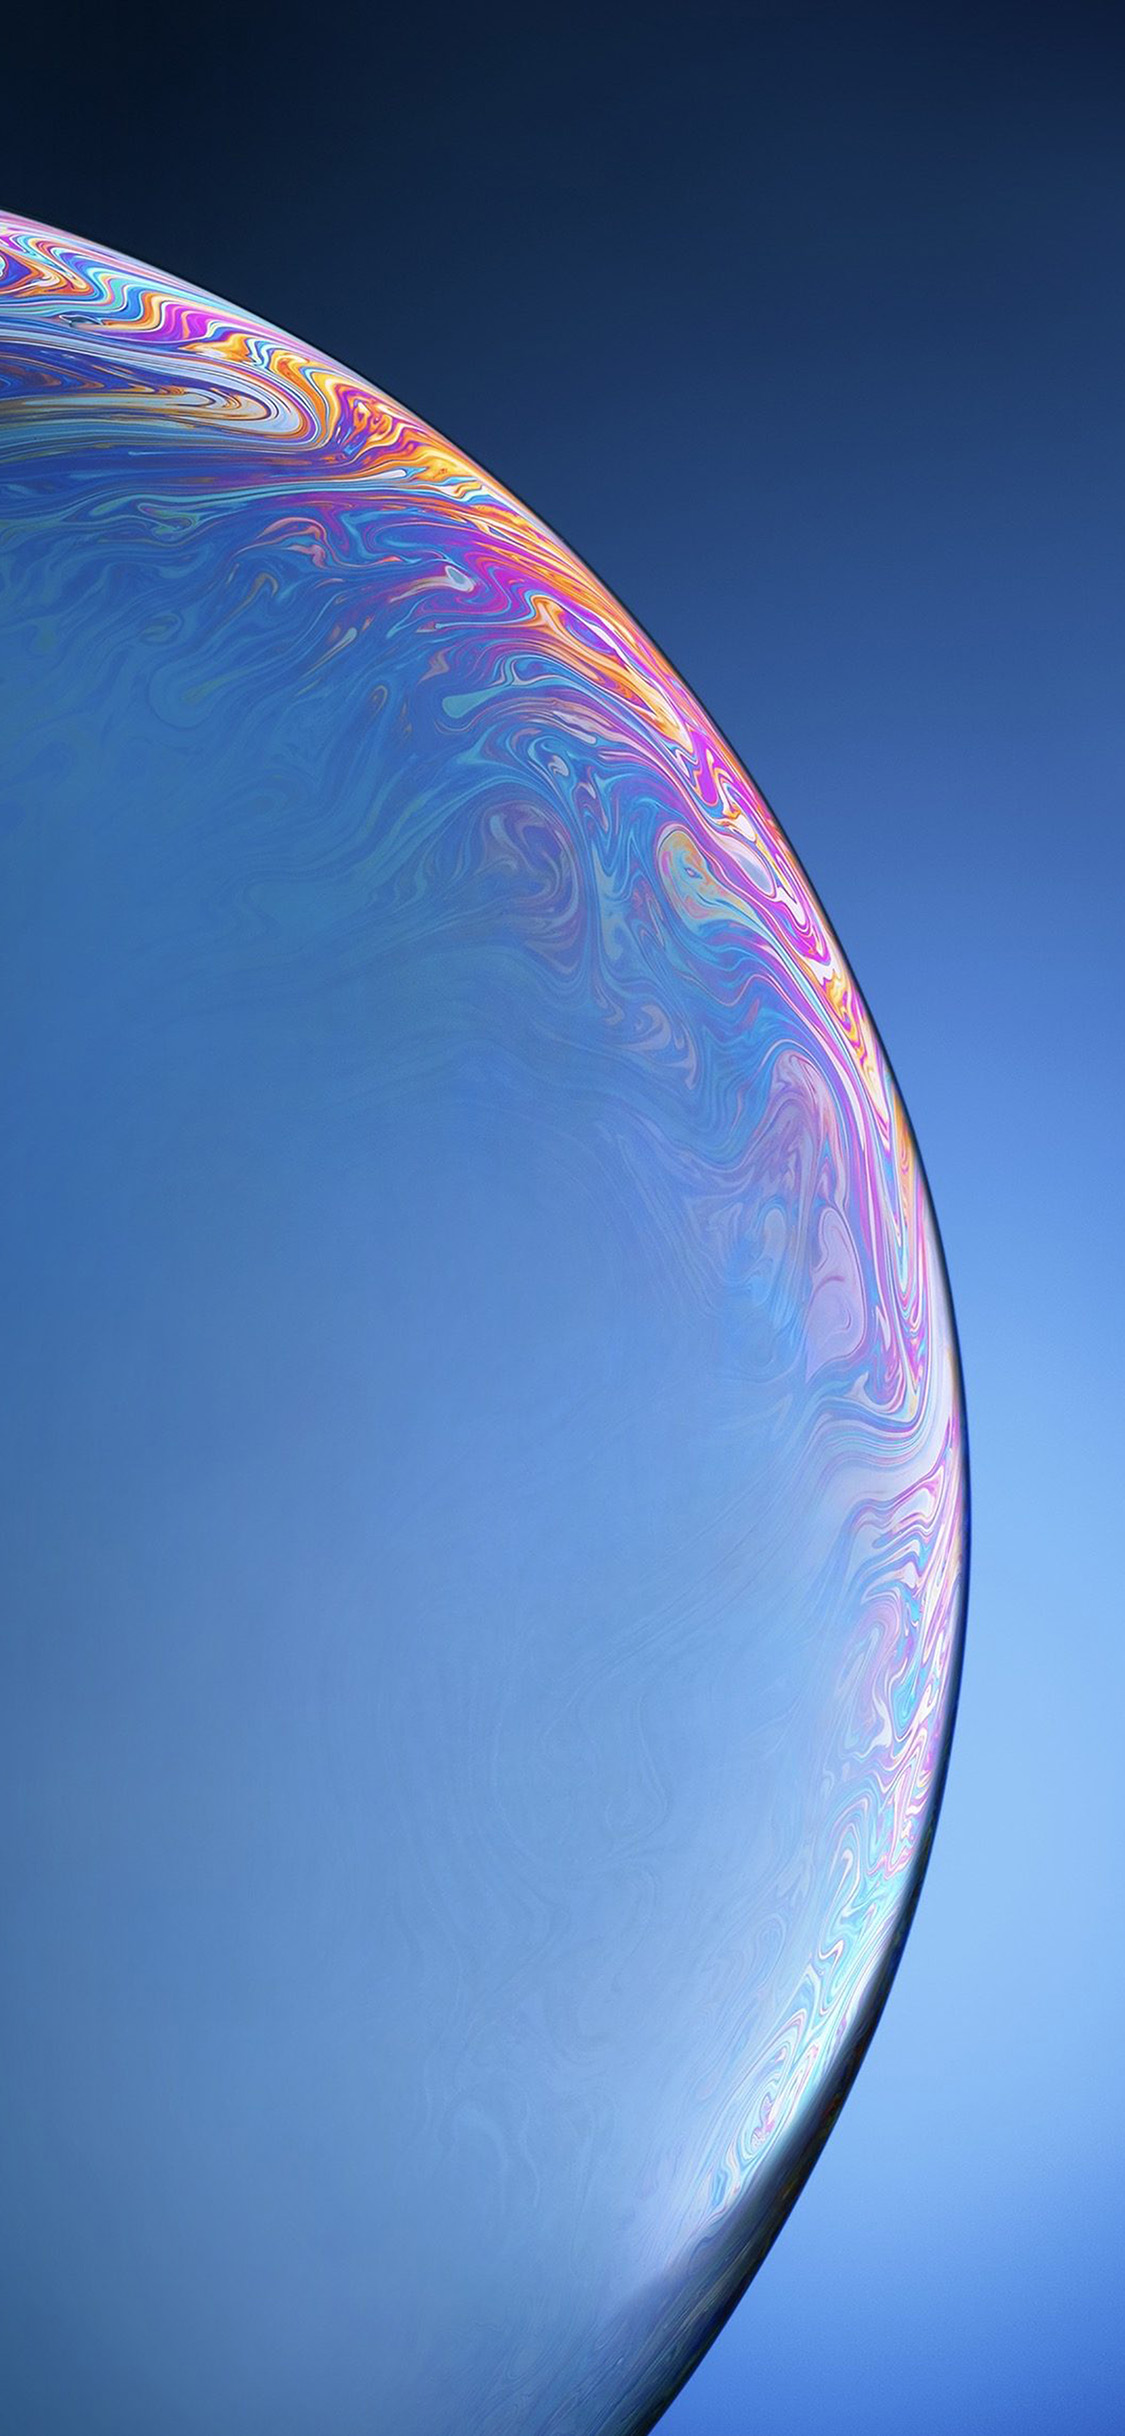 Iphonexpapers Com Iphone X Wallpaper Bg42 Blue Apple Iphone Xs